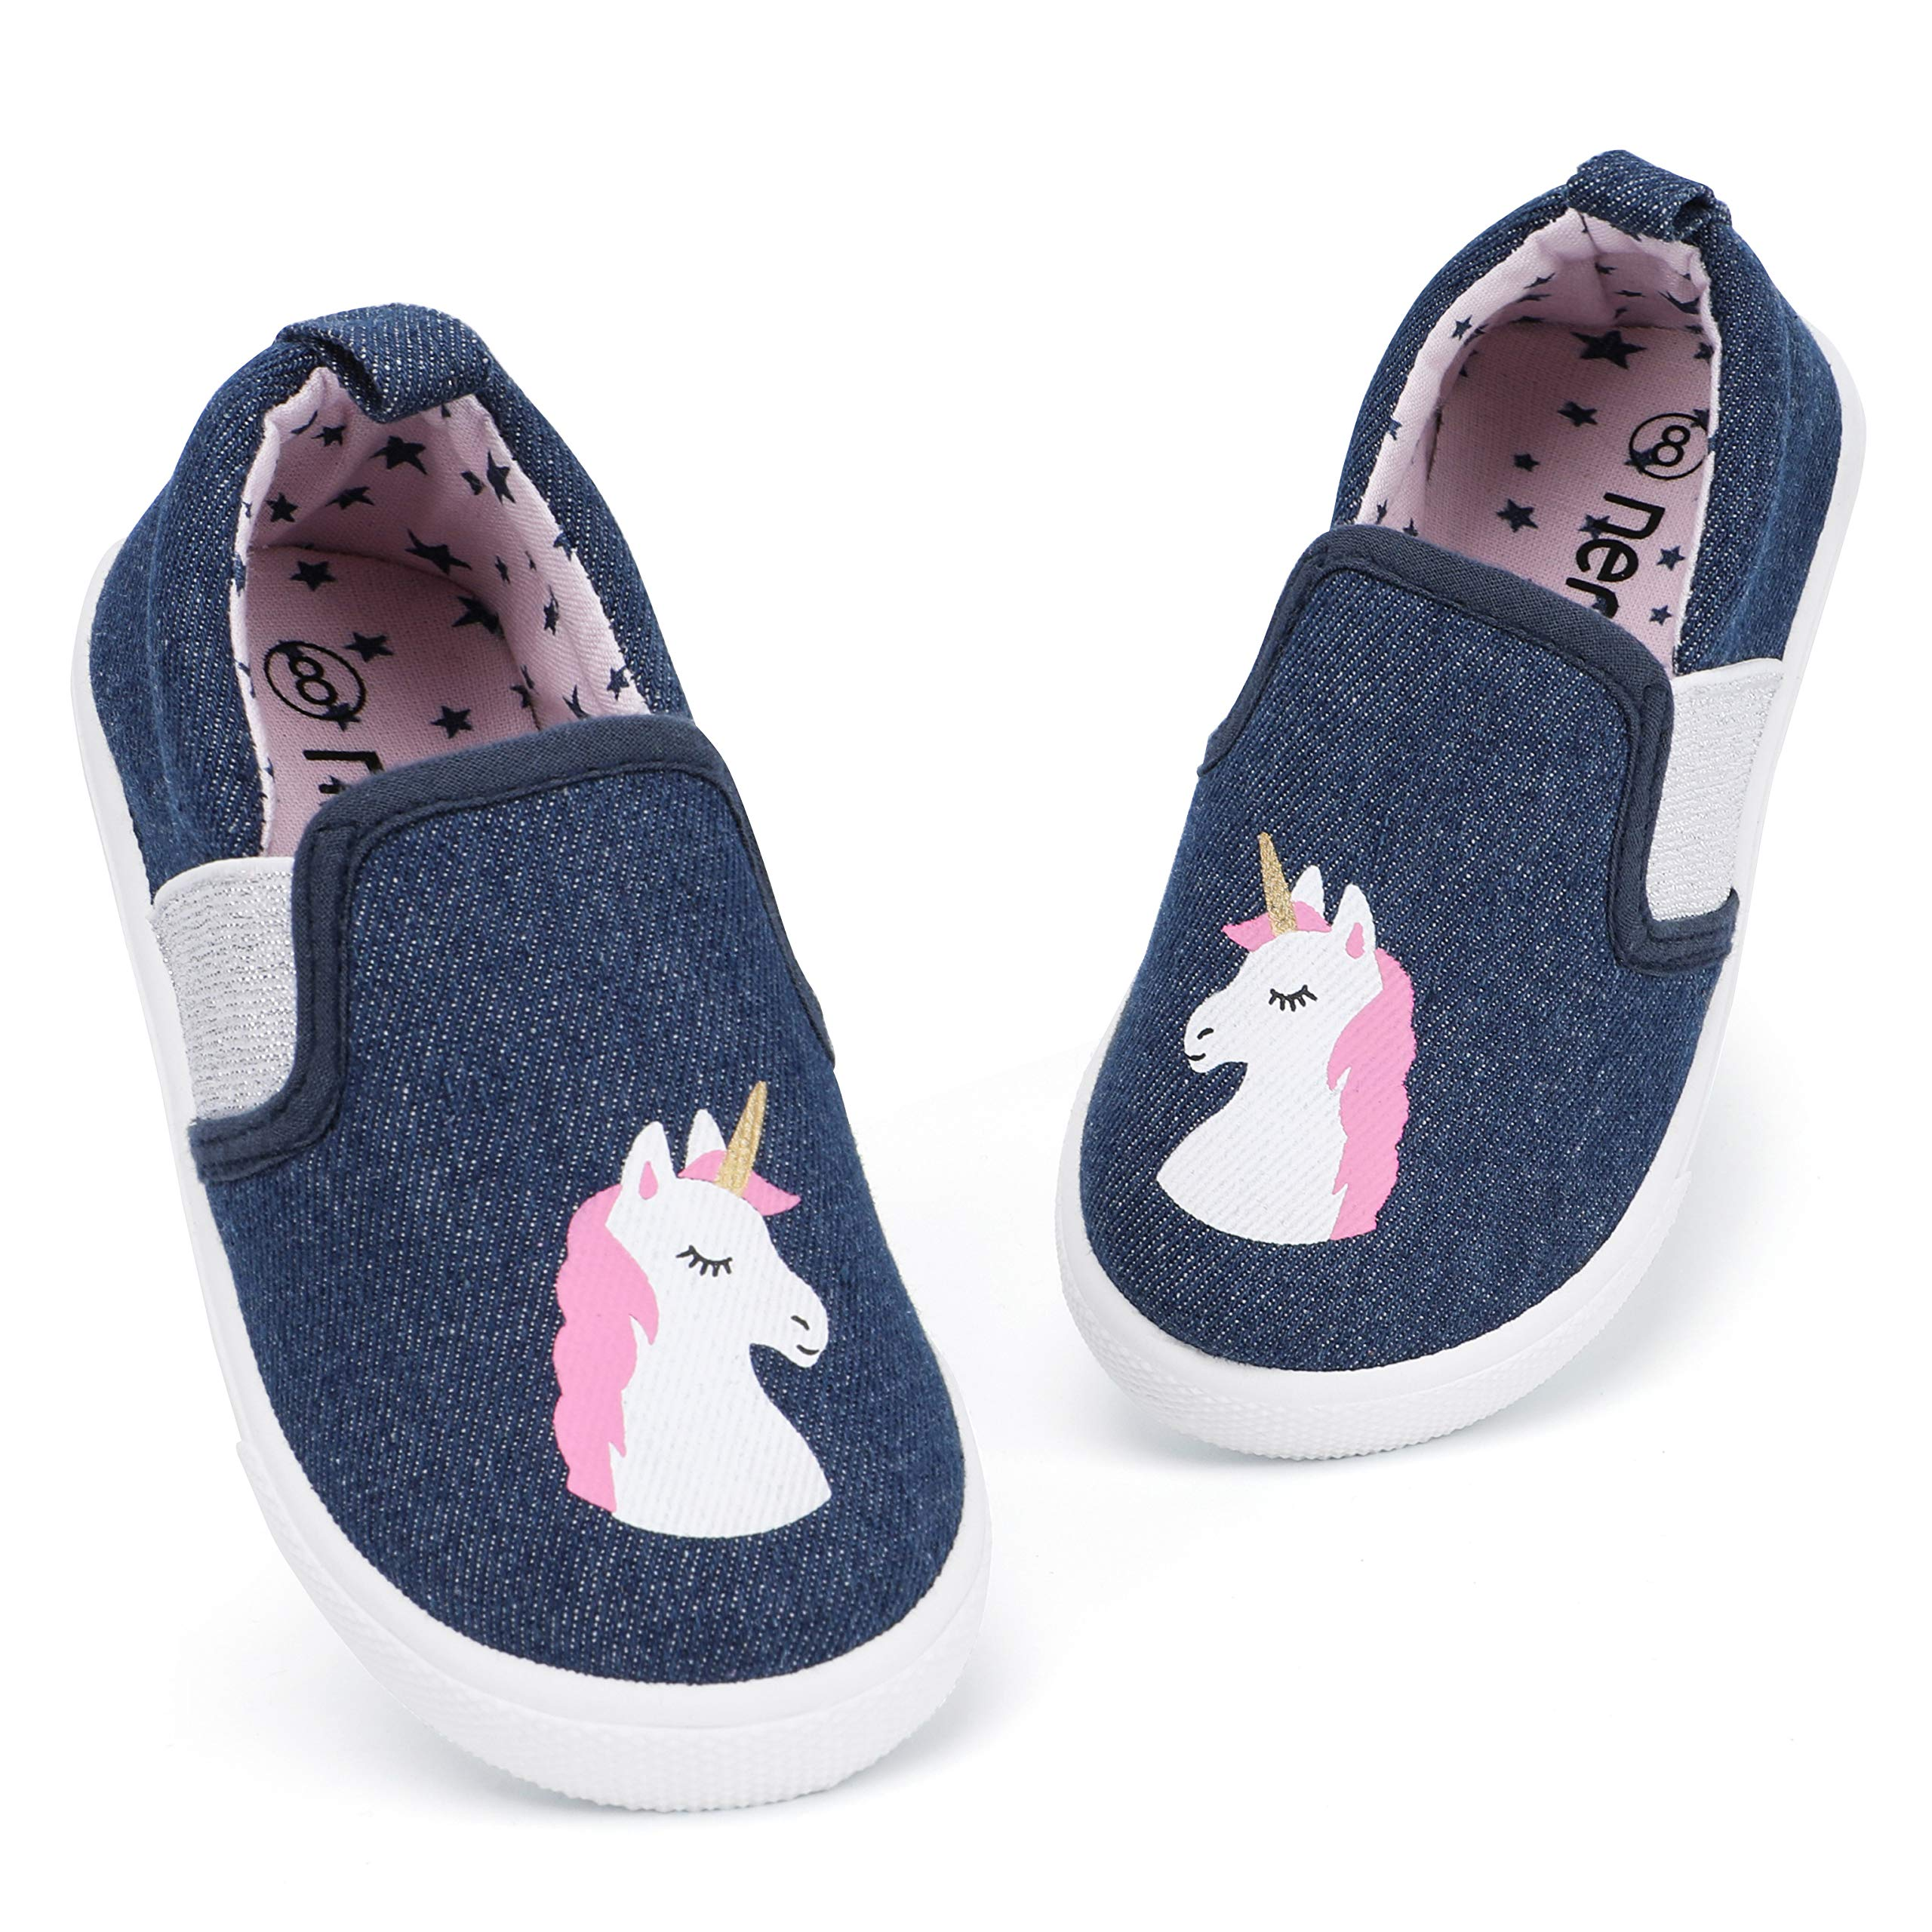 RANLY & SMILY Toddler Shoes Girls, Kids Slip On Sneakers Canvas Walking Shoes Unicorn Navy/Pink 9 M US Toddler by RANLY & SMILY